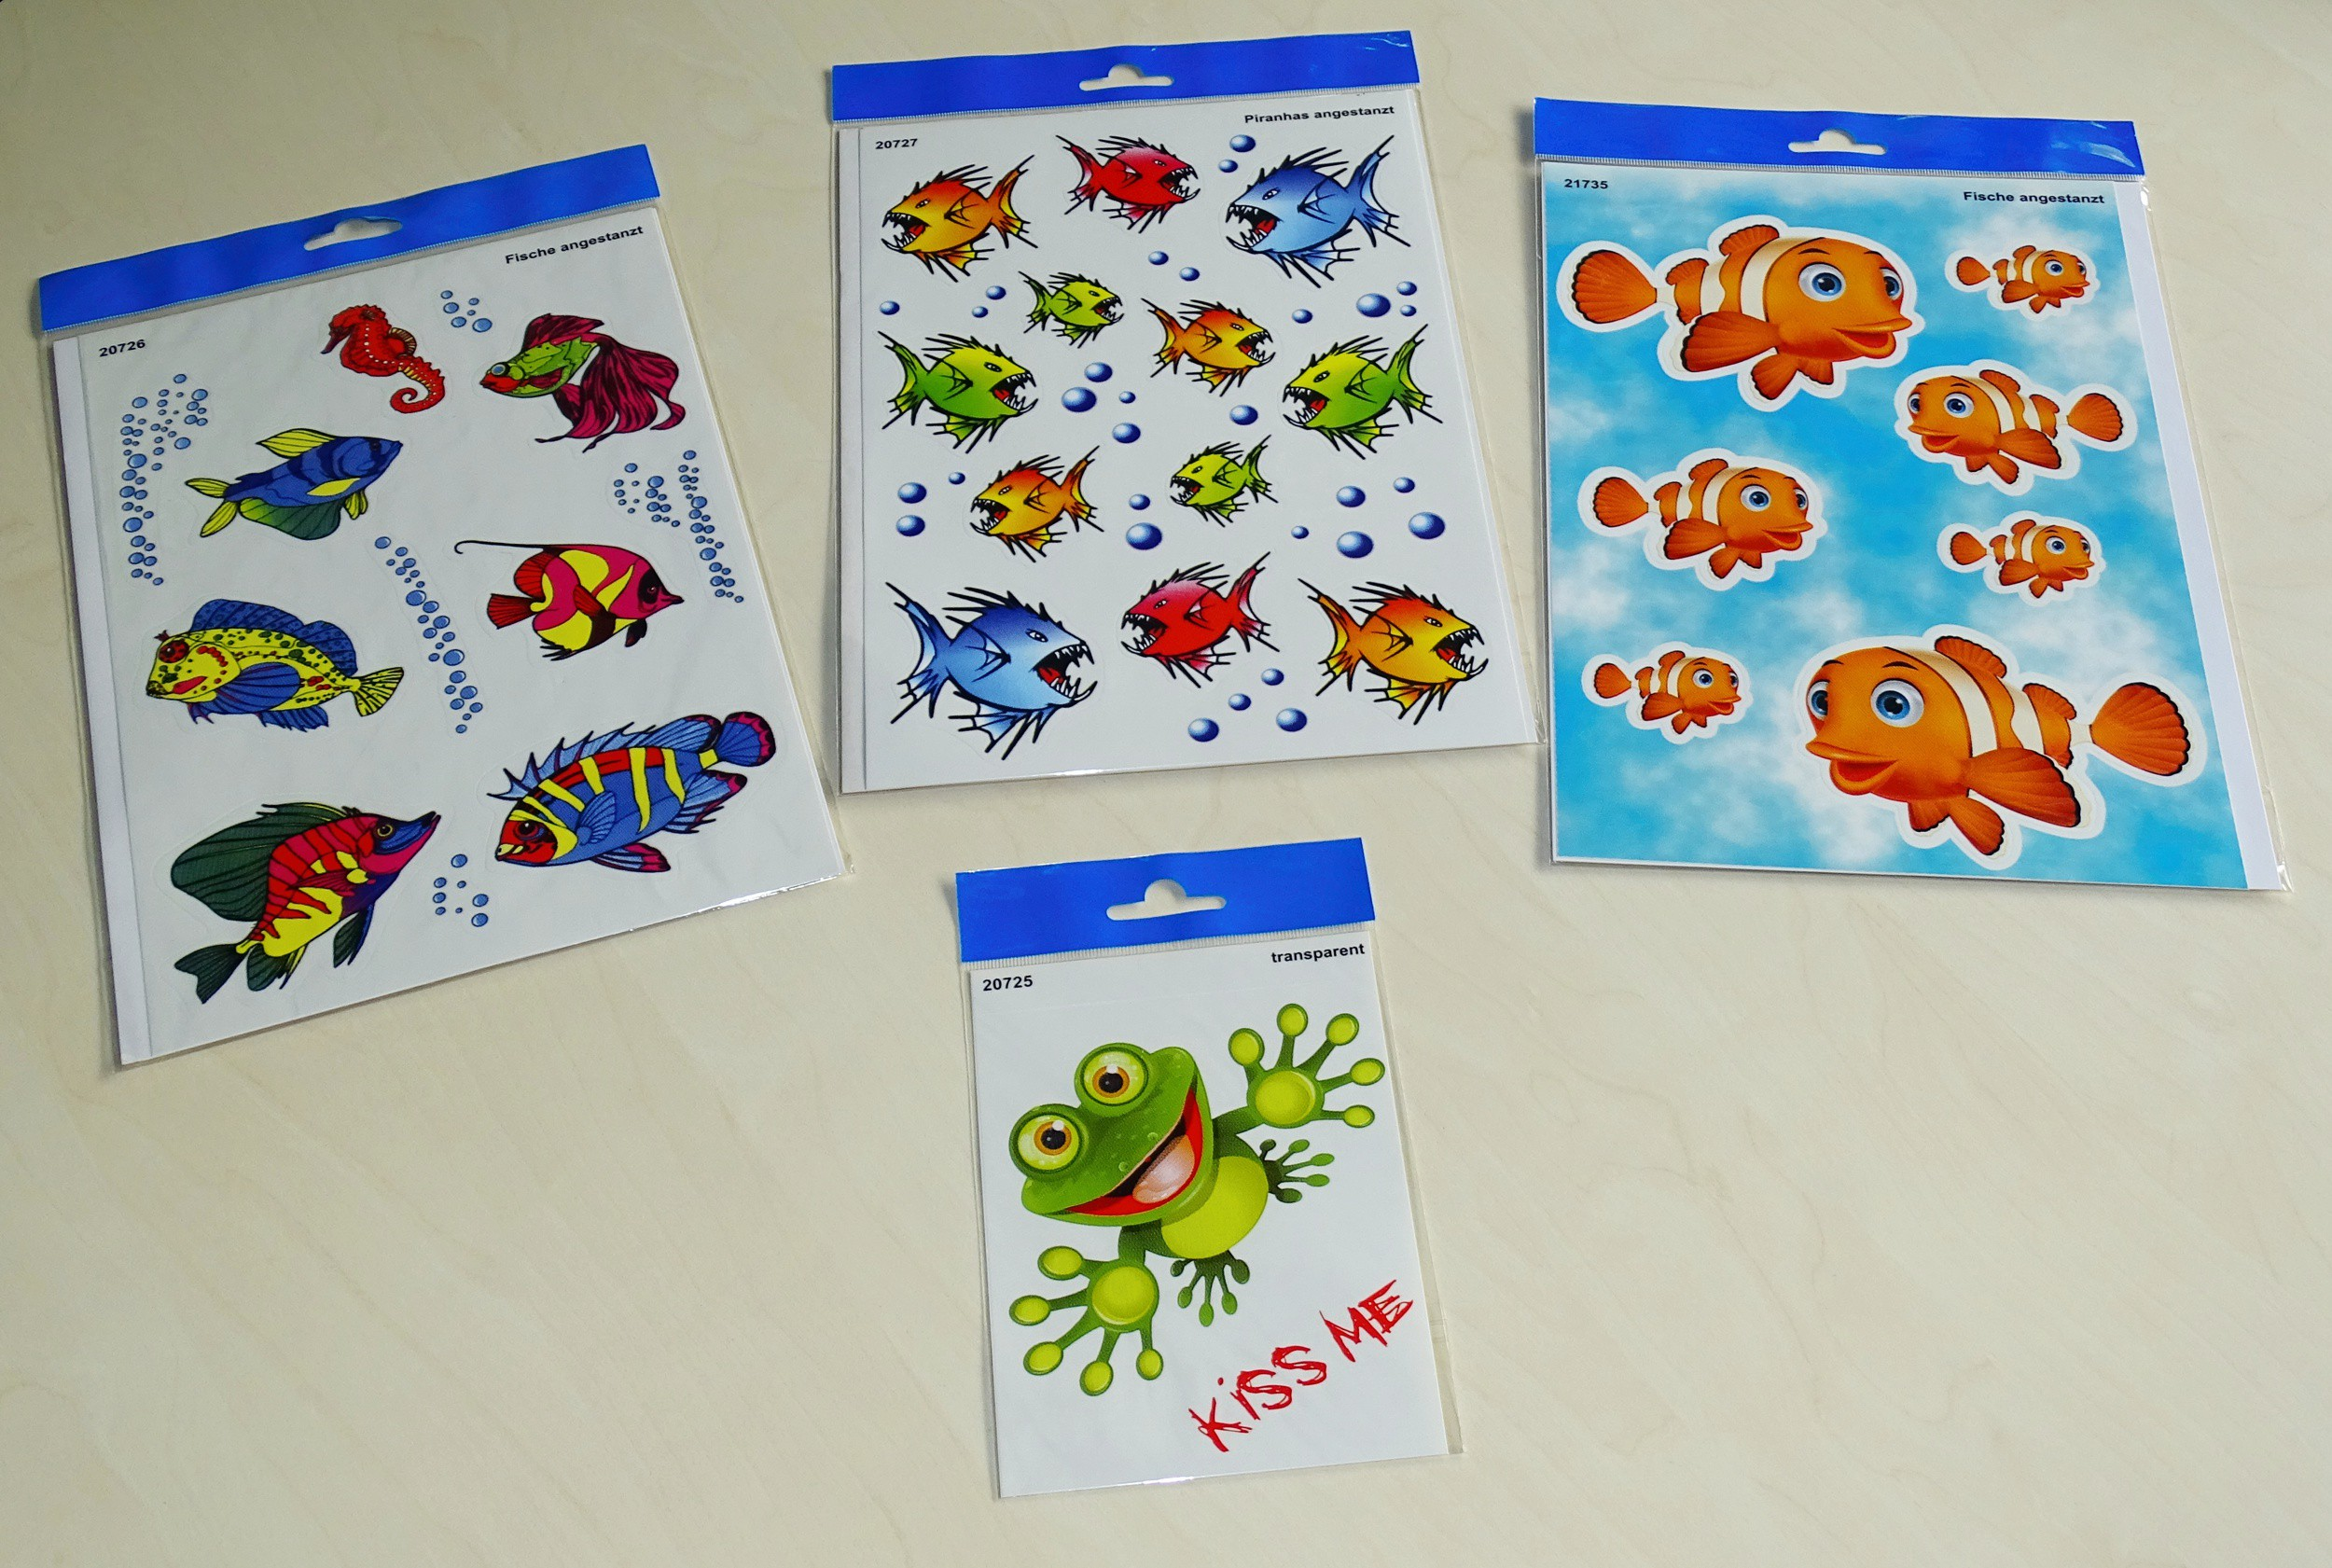 Sticker fishes 300 x 200 mm multicolored – Bild 2